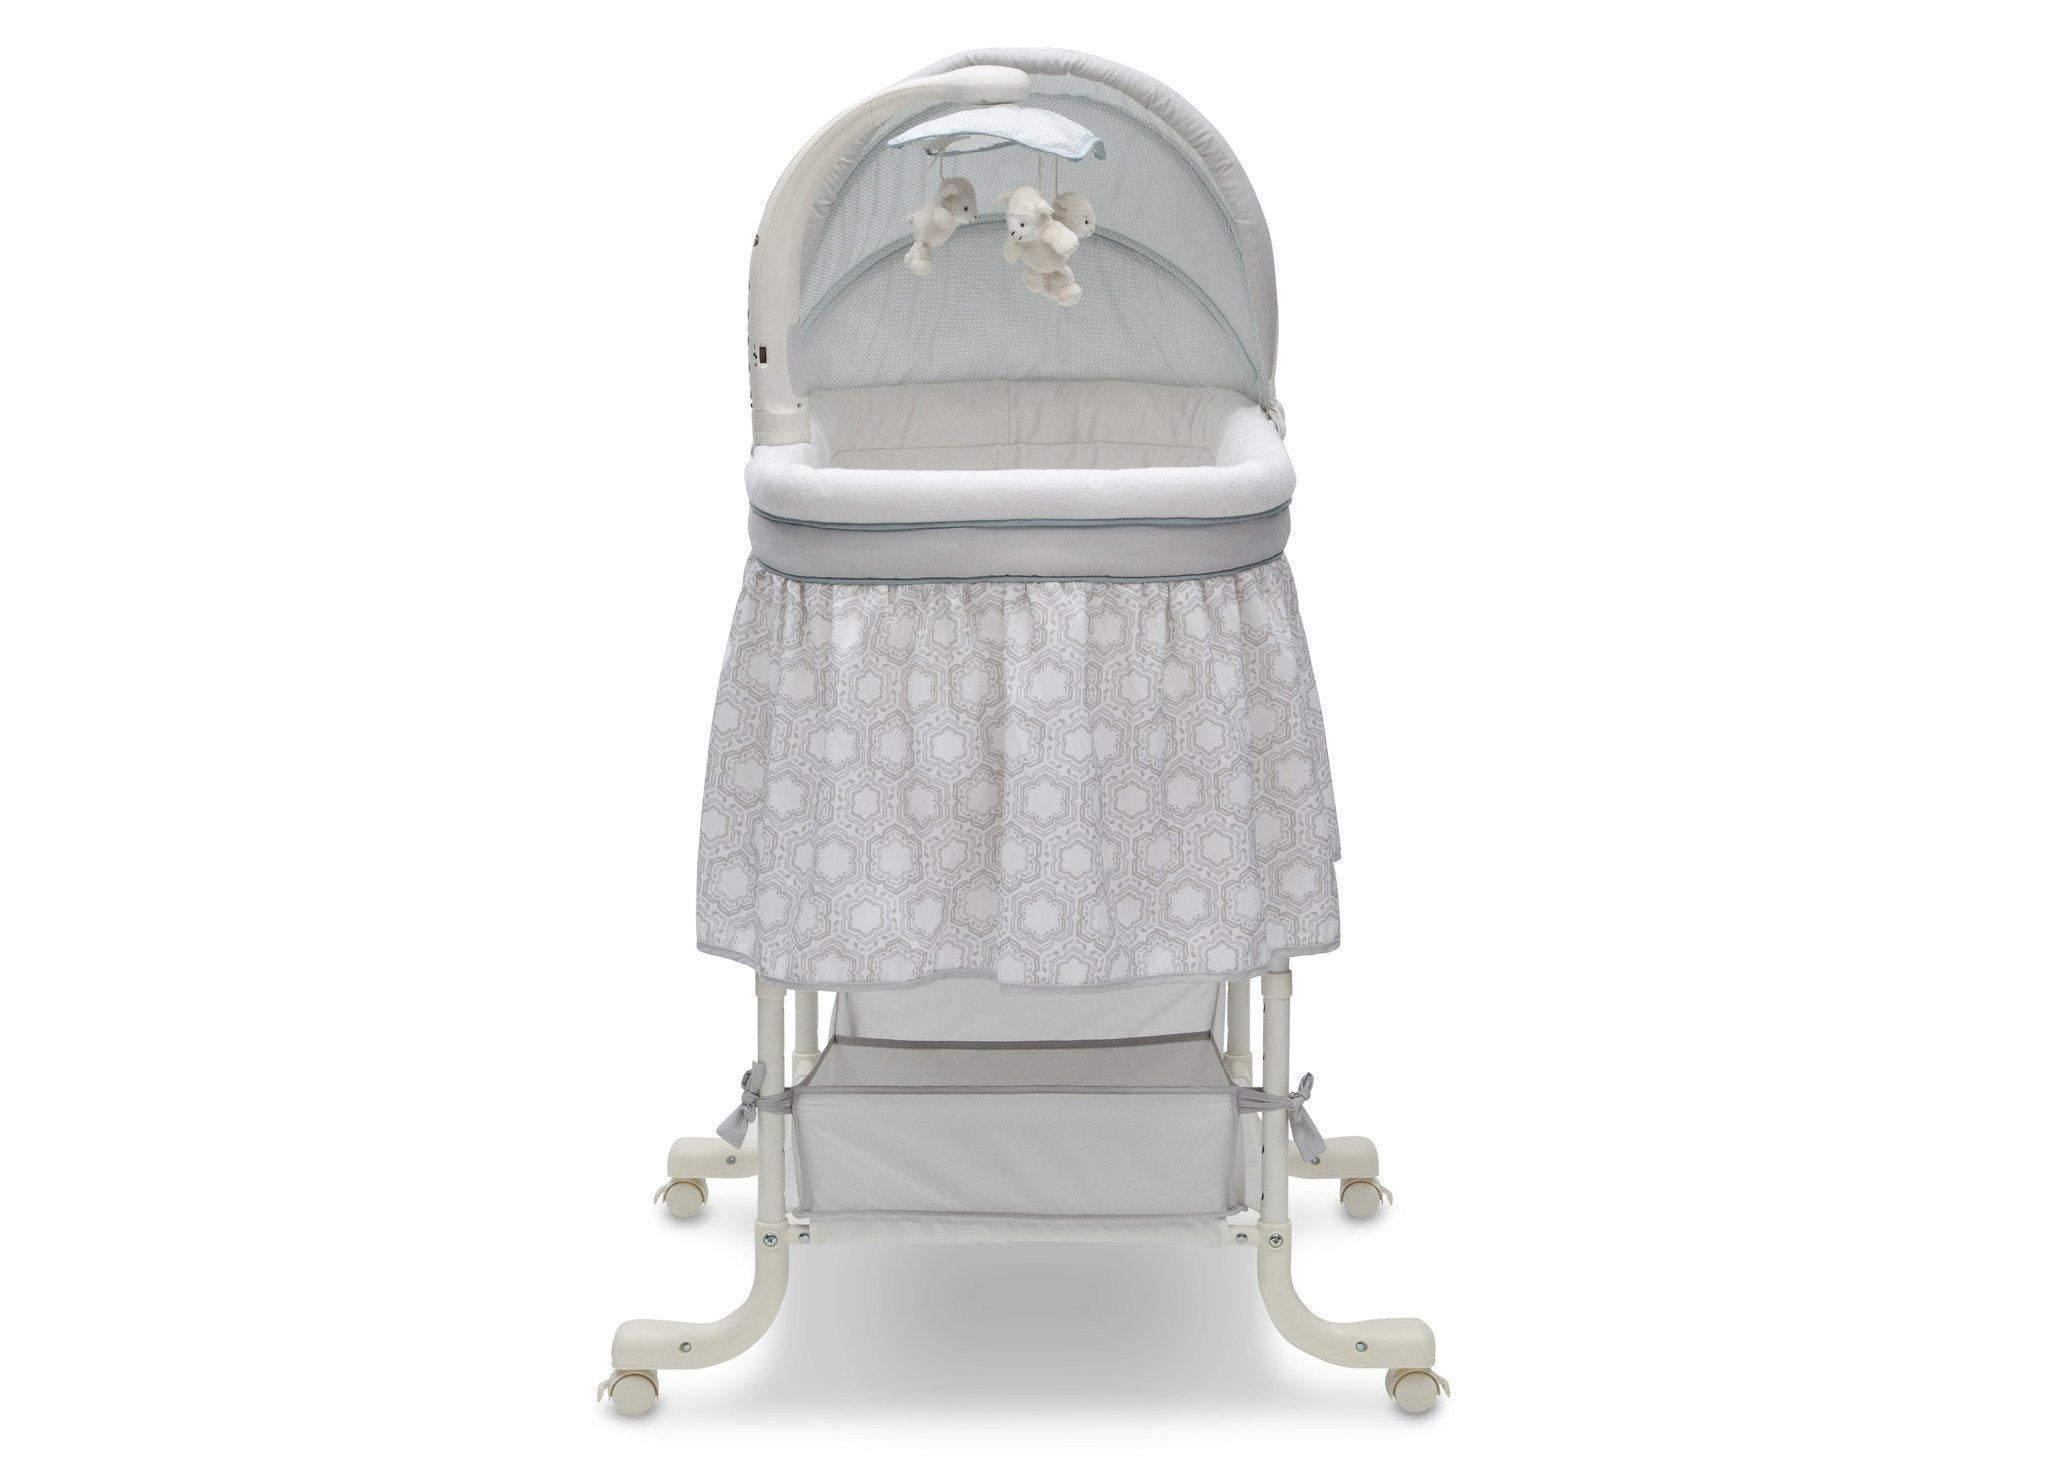 Simmons Kids Seaside (927) Deluxe Gliding Bassinet Front View f2f